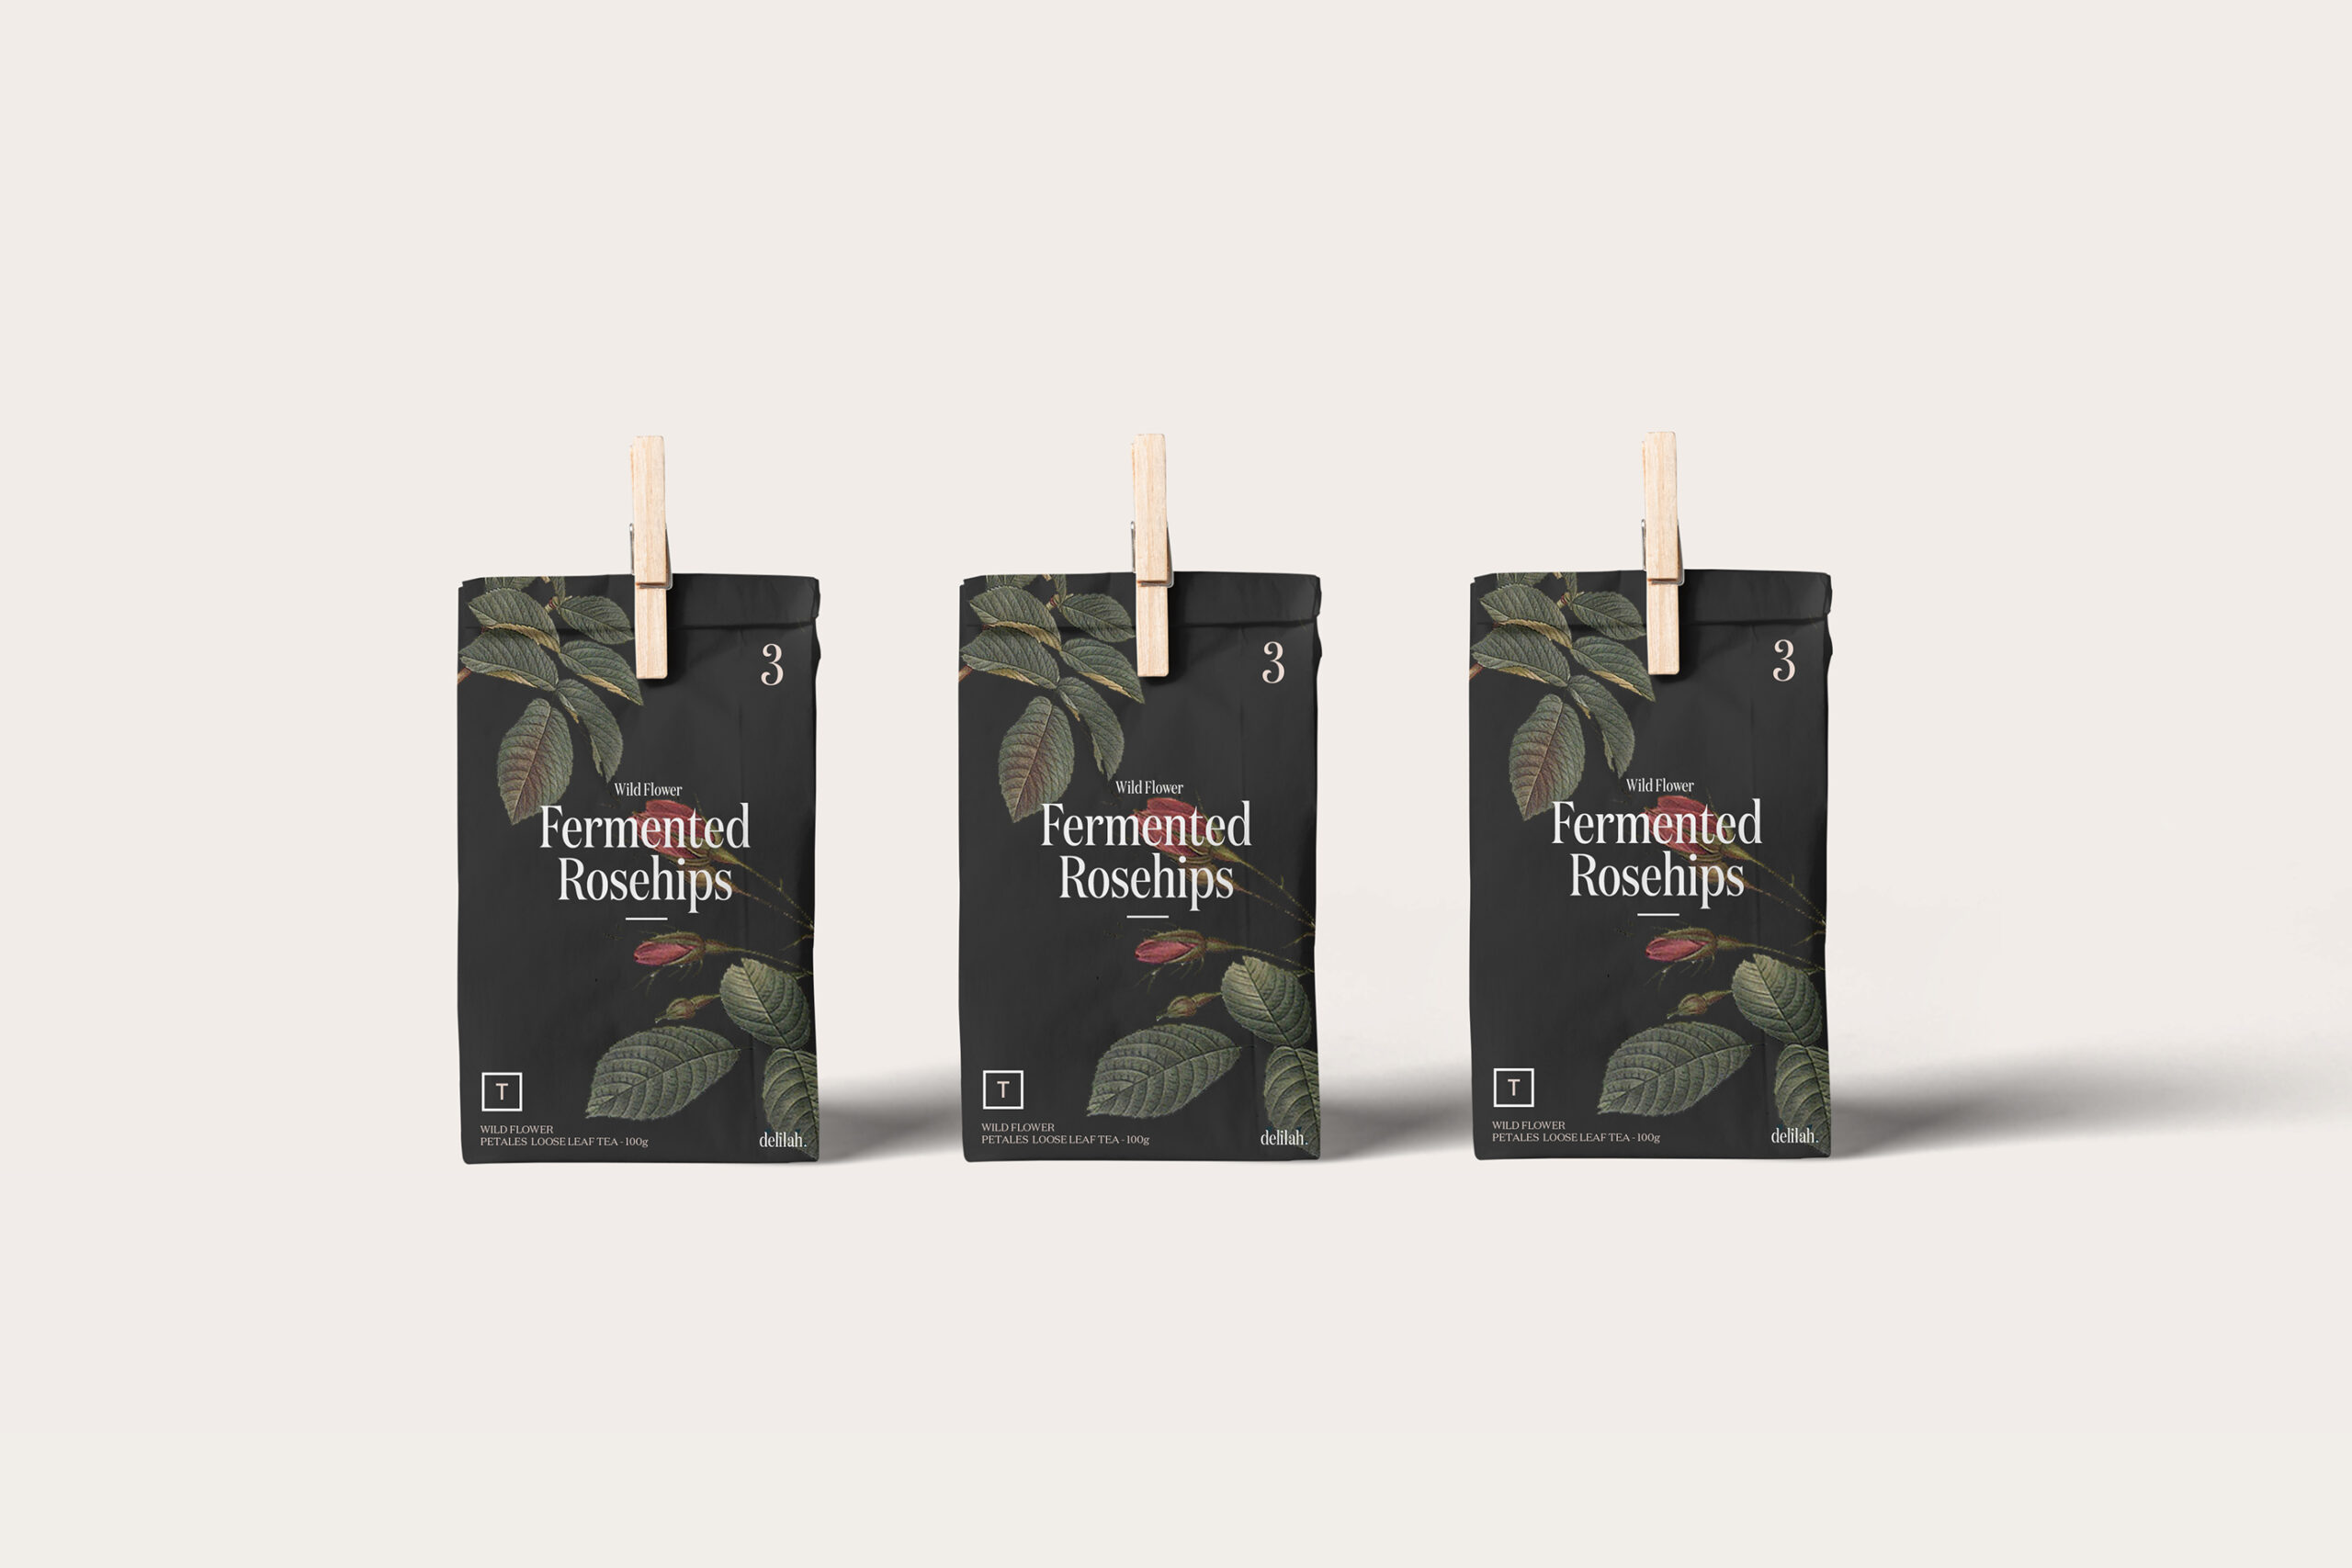 Coffee packaging design Vancouver Canada